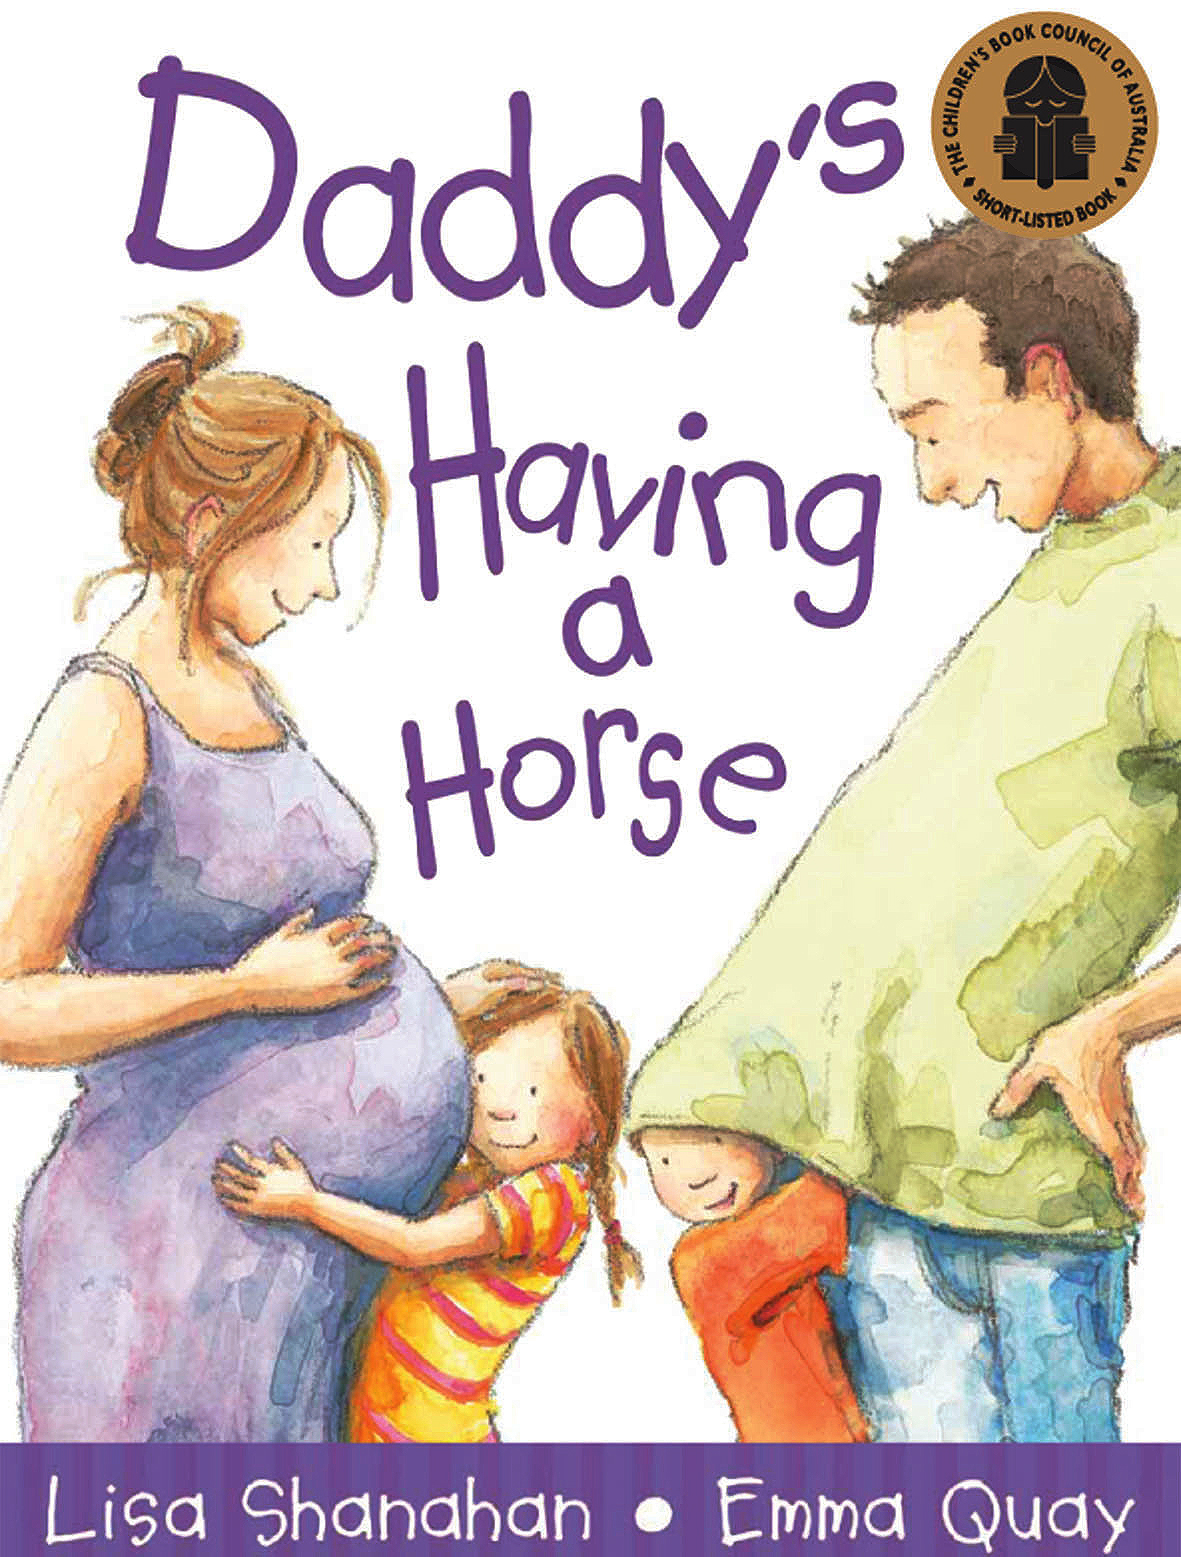 DADDY'S HAVING A HORSE by Lisa Shanahan and Emma Quay (Lothian Books)